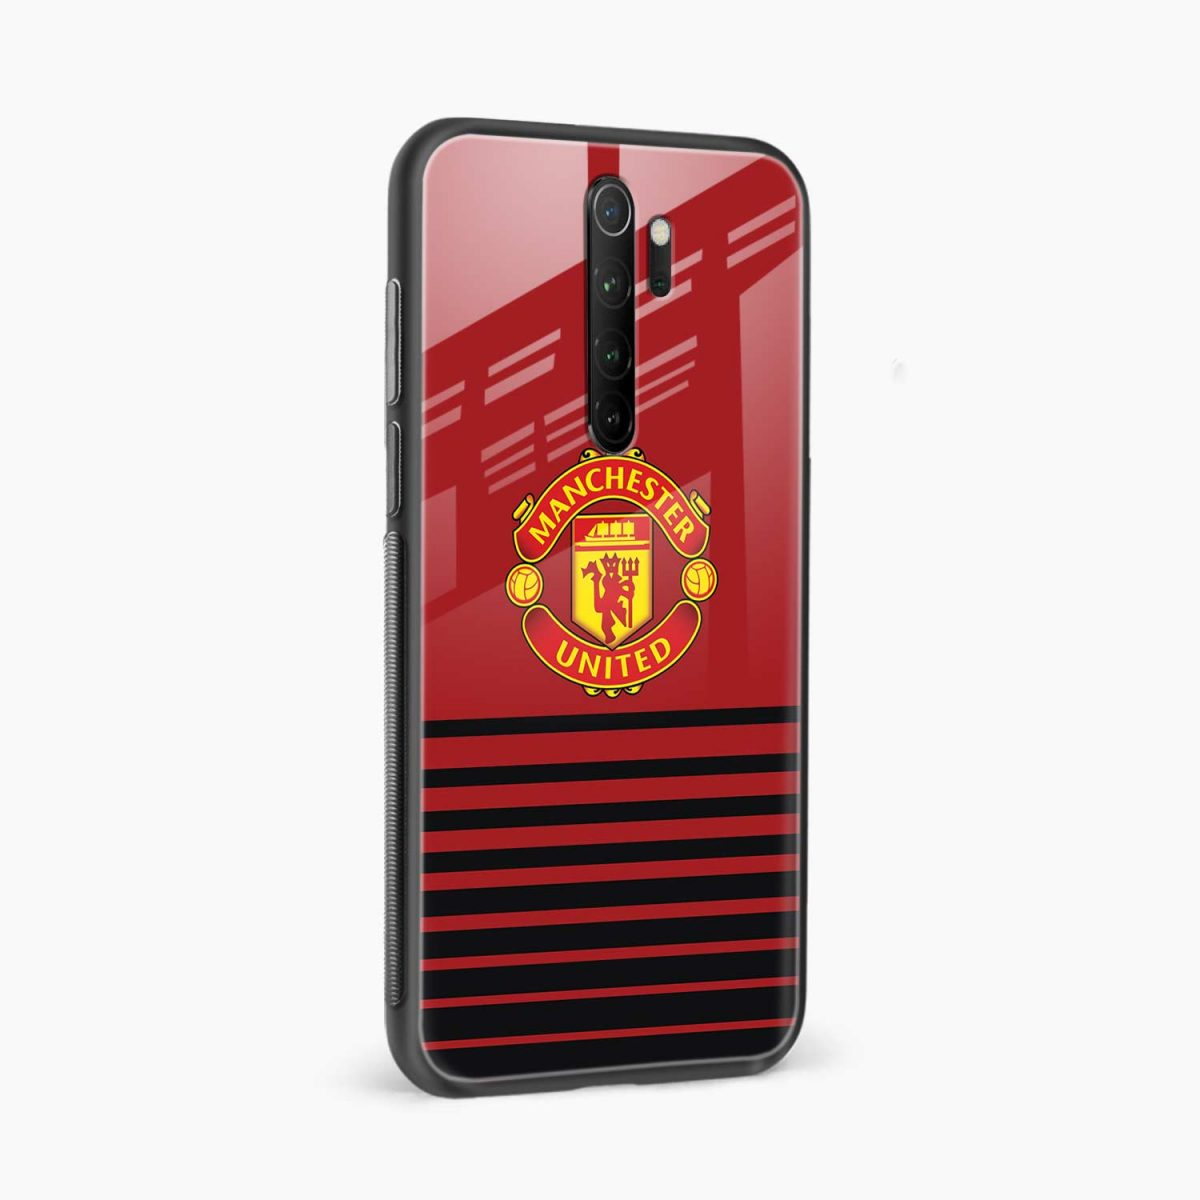 manchester united redmi note 8 pro back cover side view